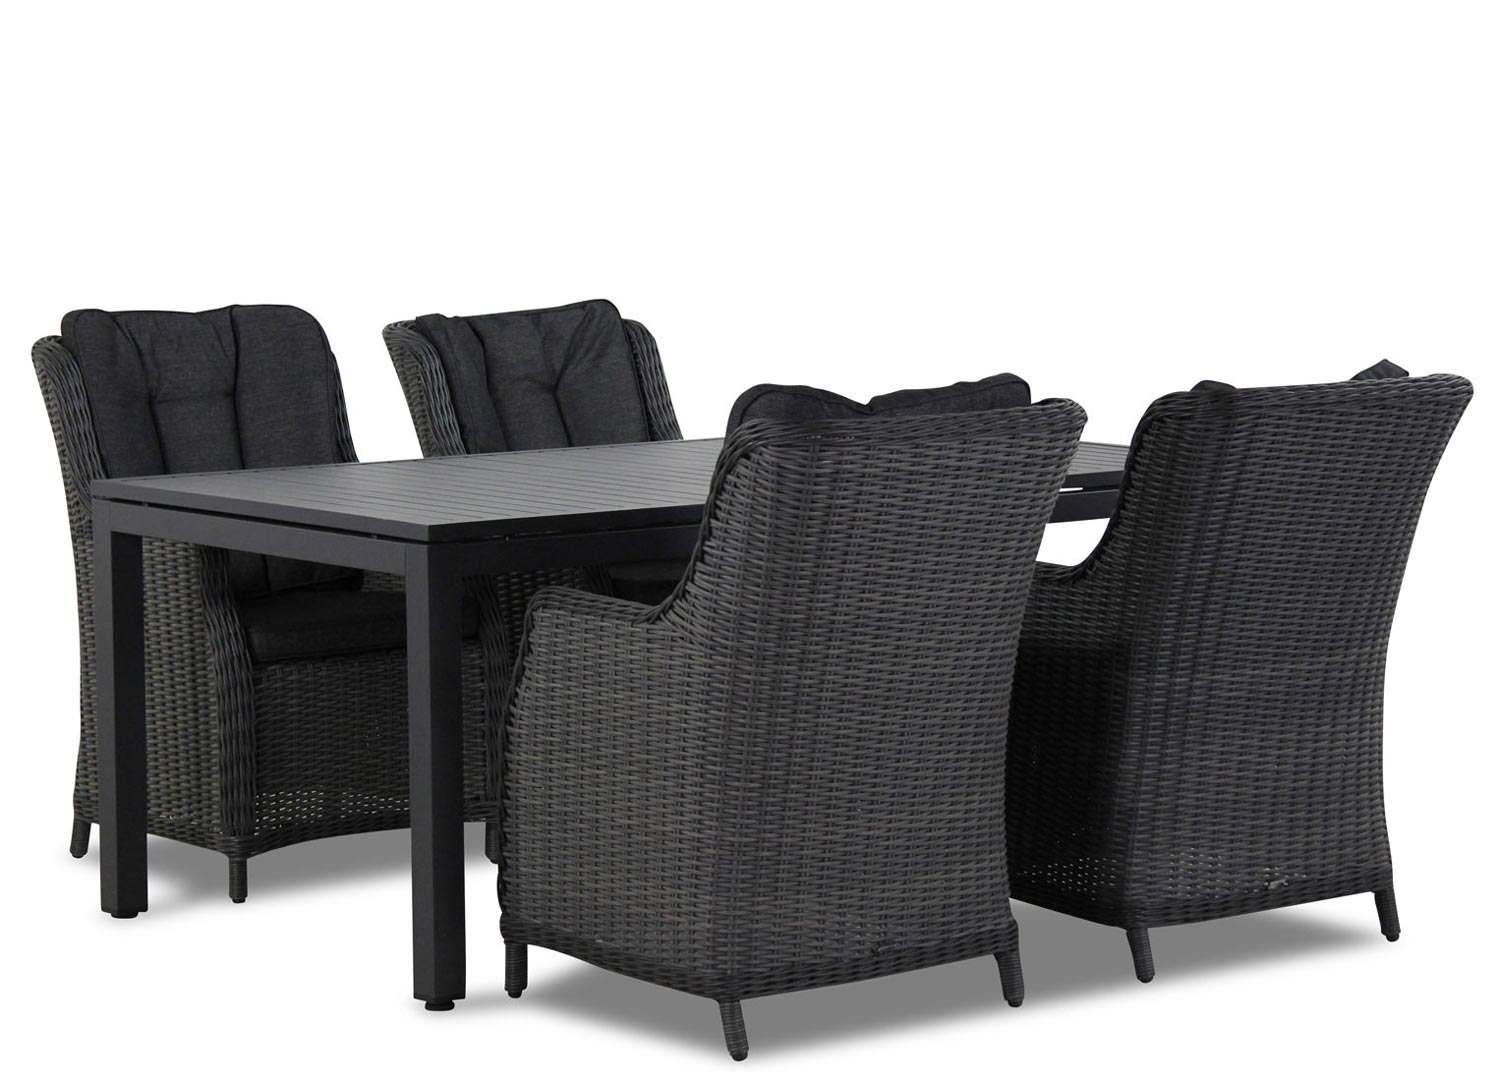 Wicker Garden Collections Buckingham/Concept 180 cm dining tuinset 5-delig